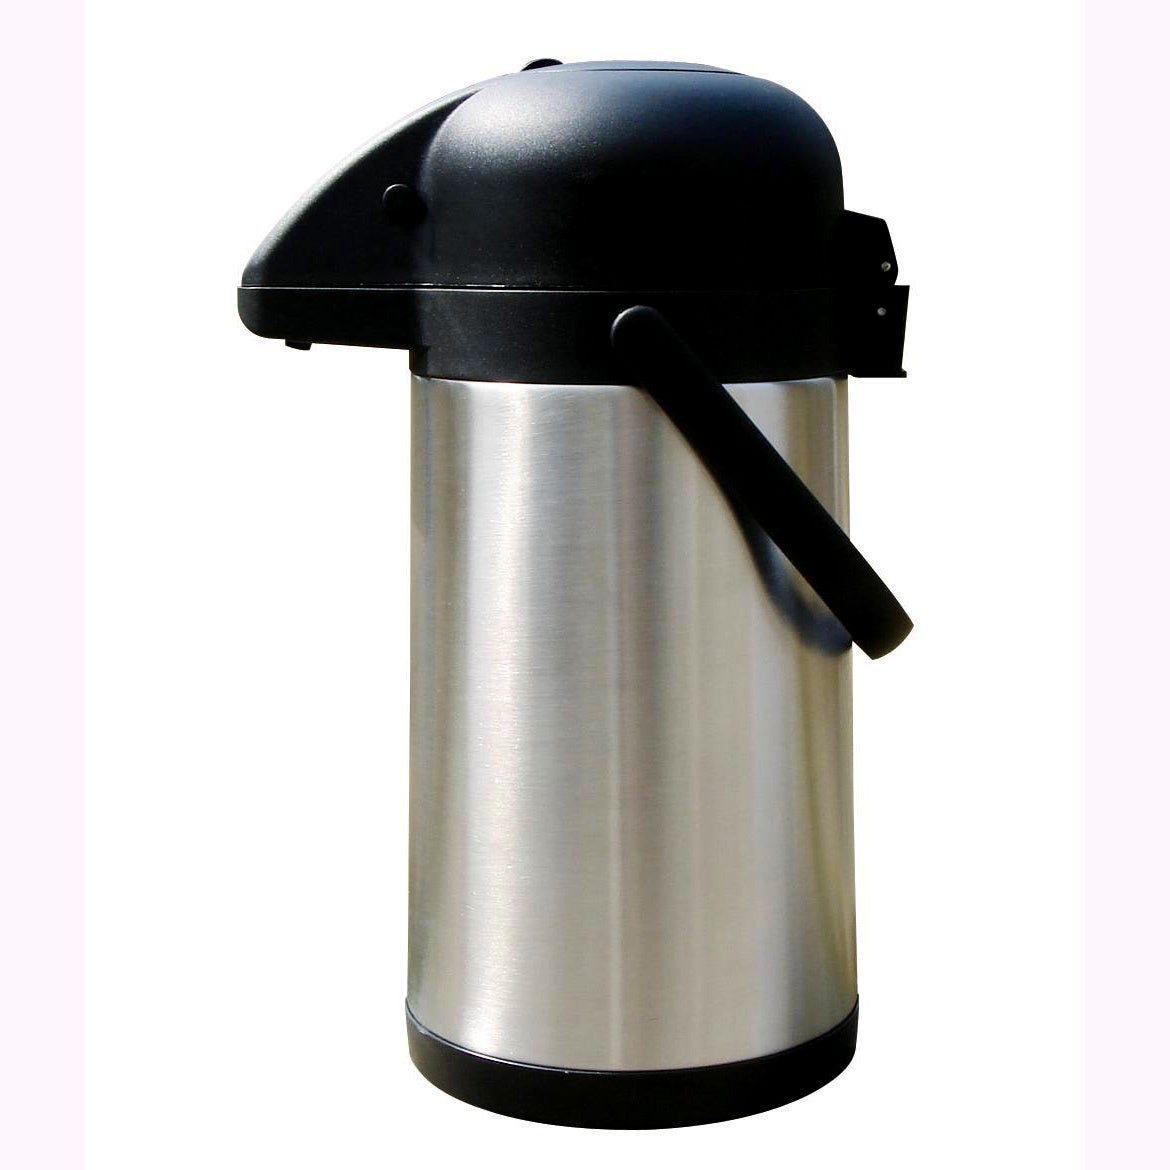 Brentwood CTSA-25 85-ounce Black Stainless Steel Coffee Thermos and Dispenser at Sears.com